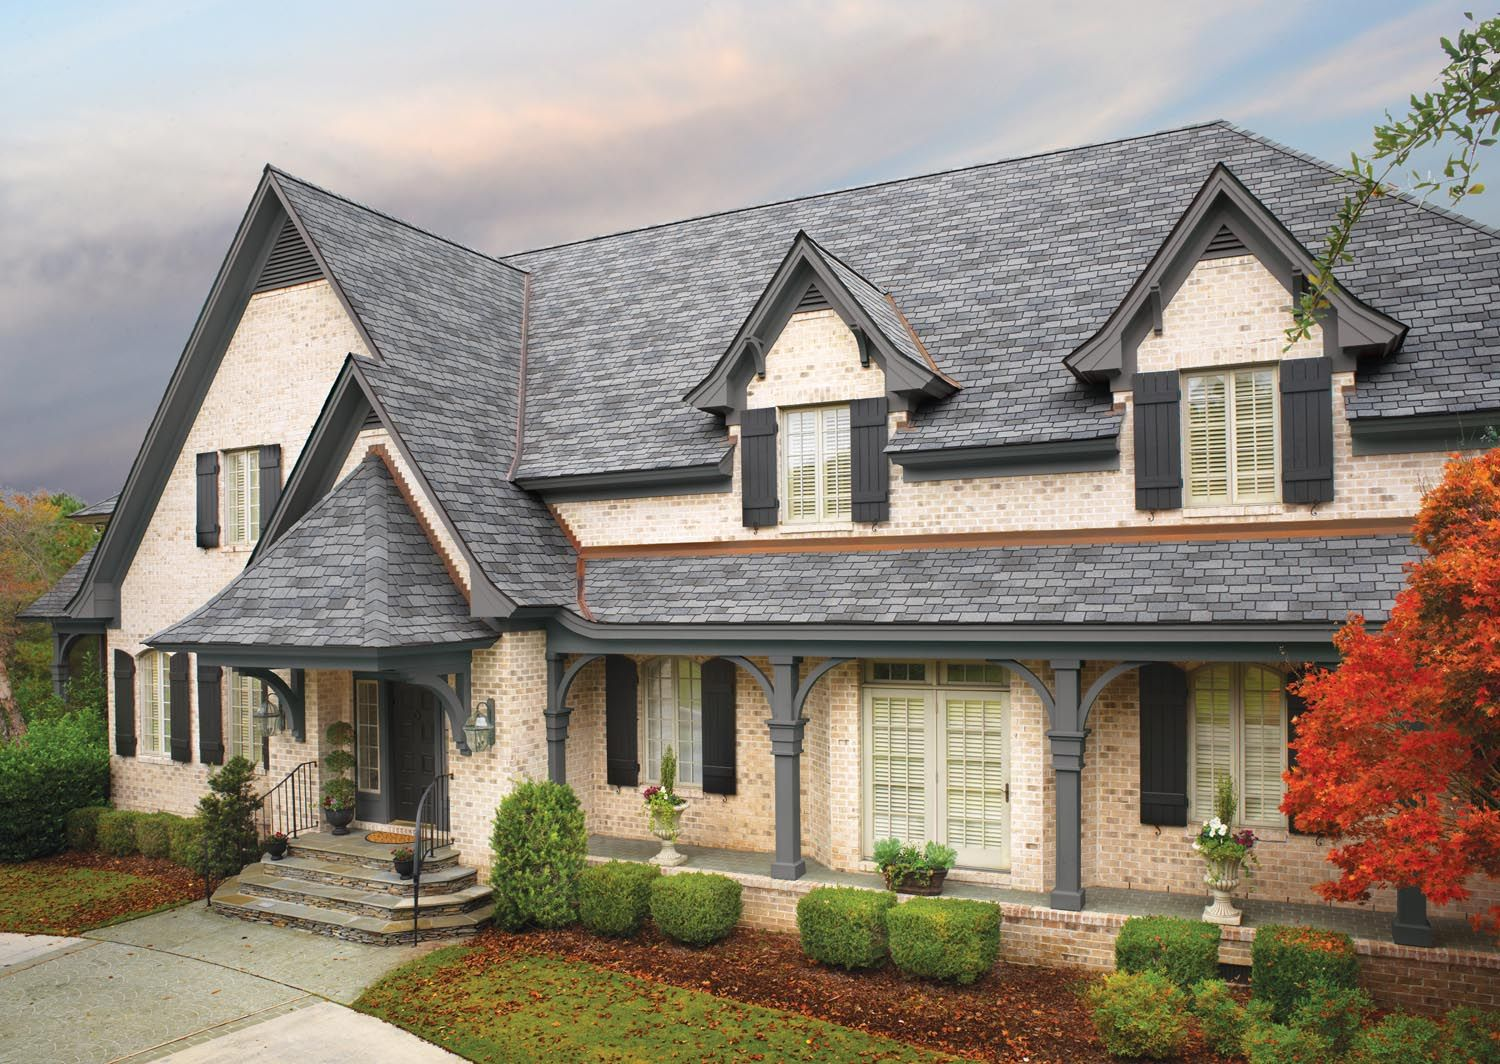 Best Gaf Woodland Castlewood In Gray Roofing Shingles 400 x 300